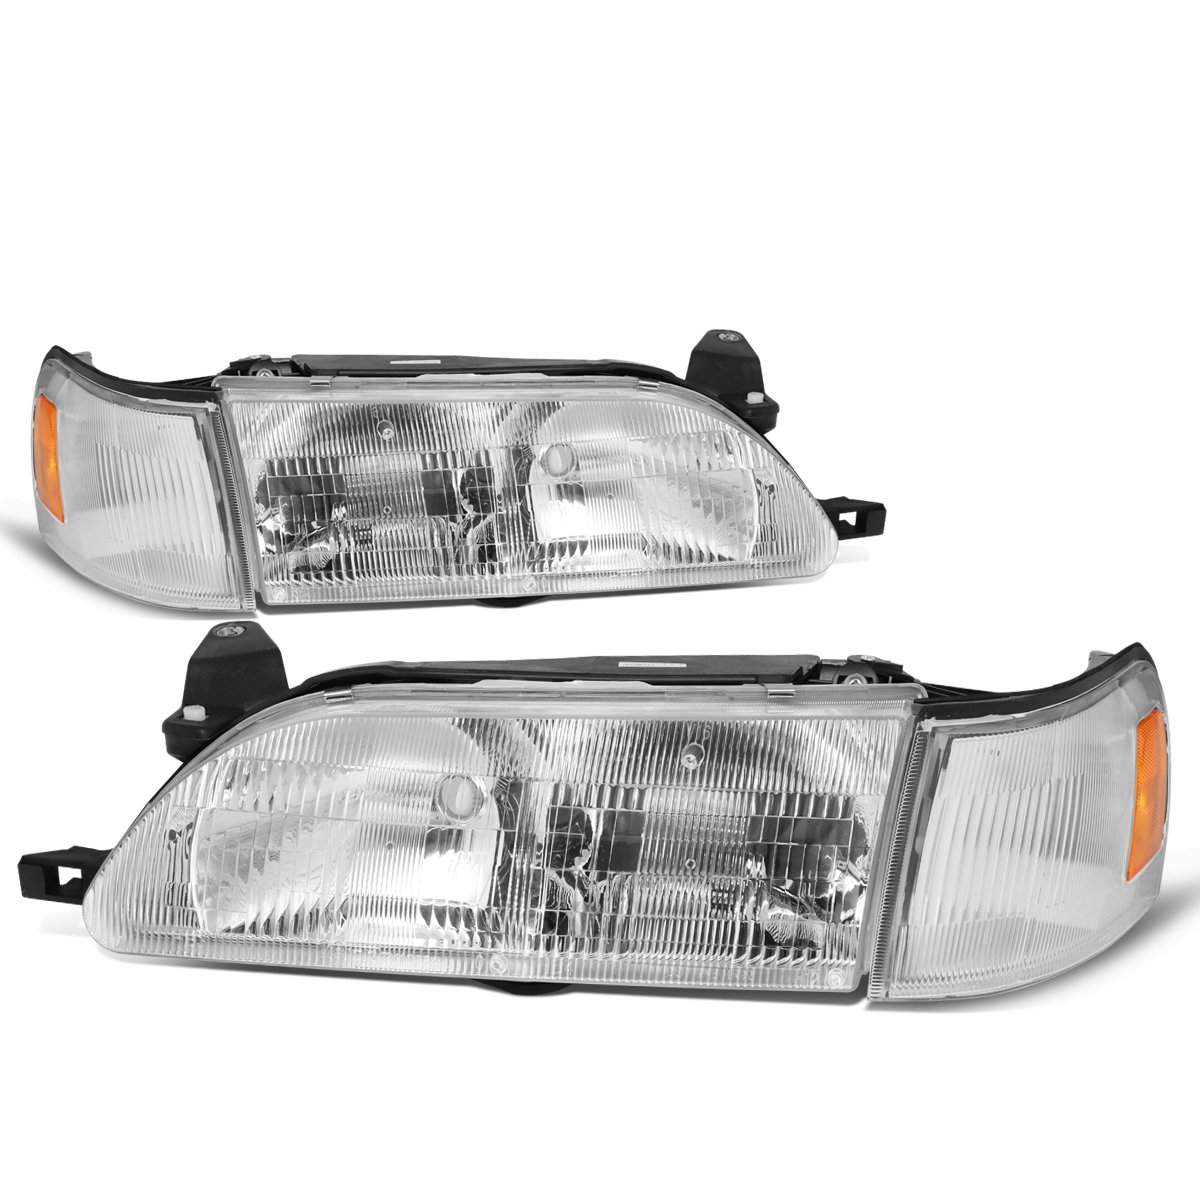 For 93-97 Corolla DNA Motoring HL-OH-095-CH-AM Pair Chrome//Amber Headlight//Lamps